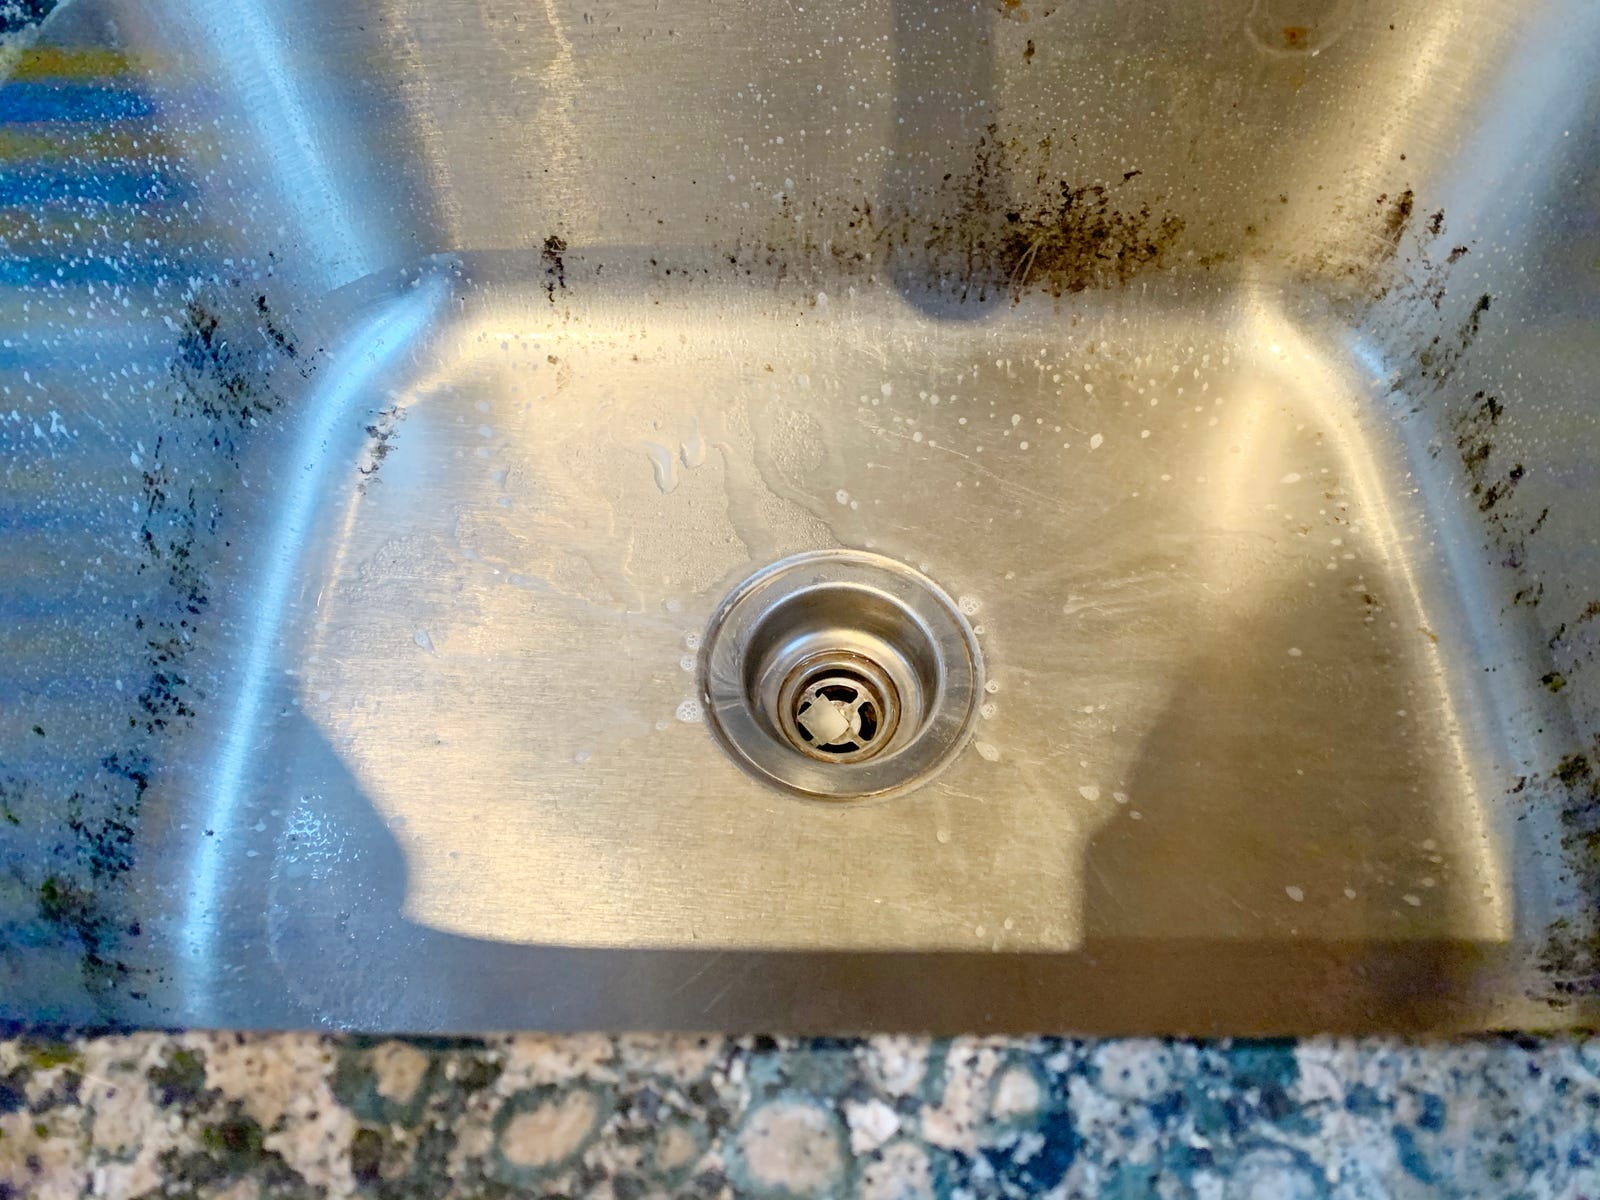 The sink before the drill brush.